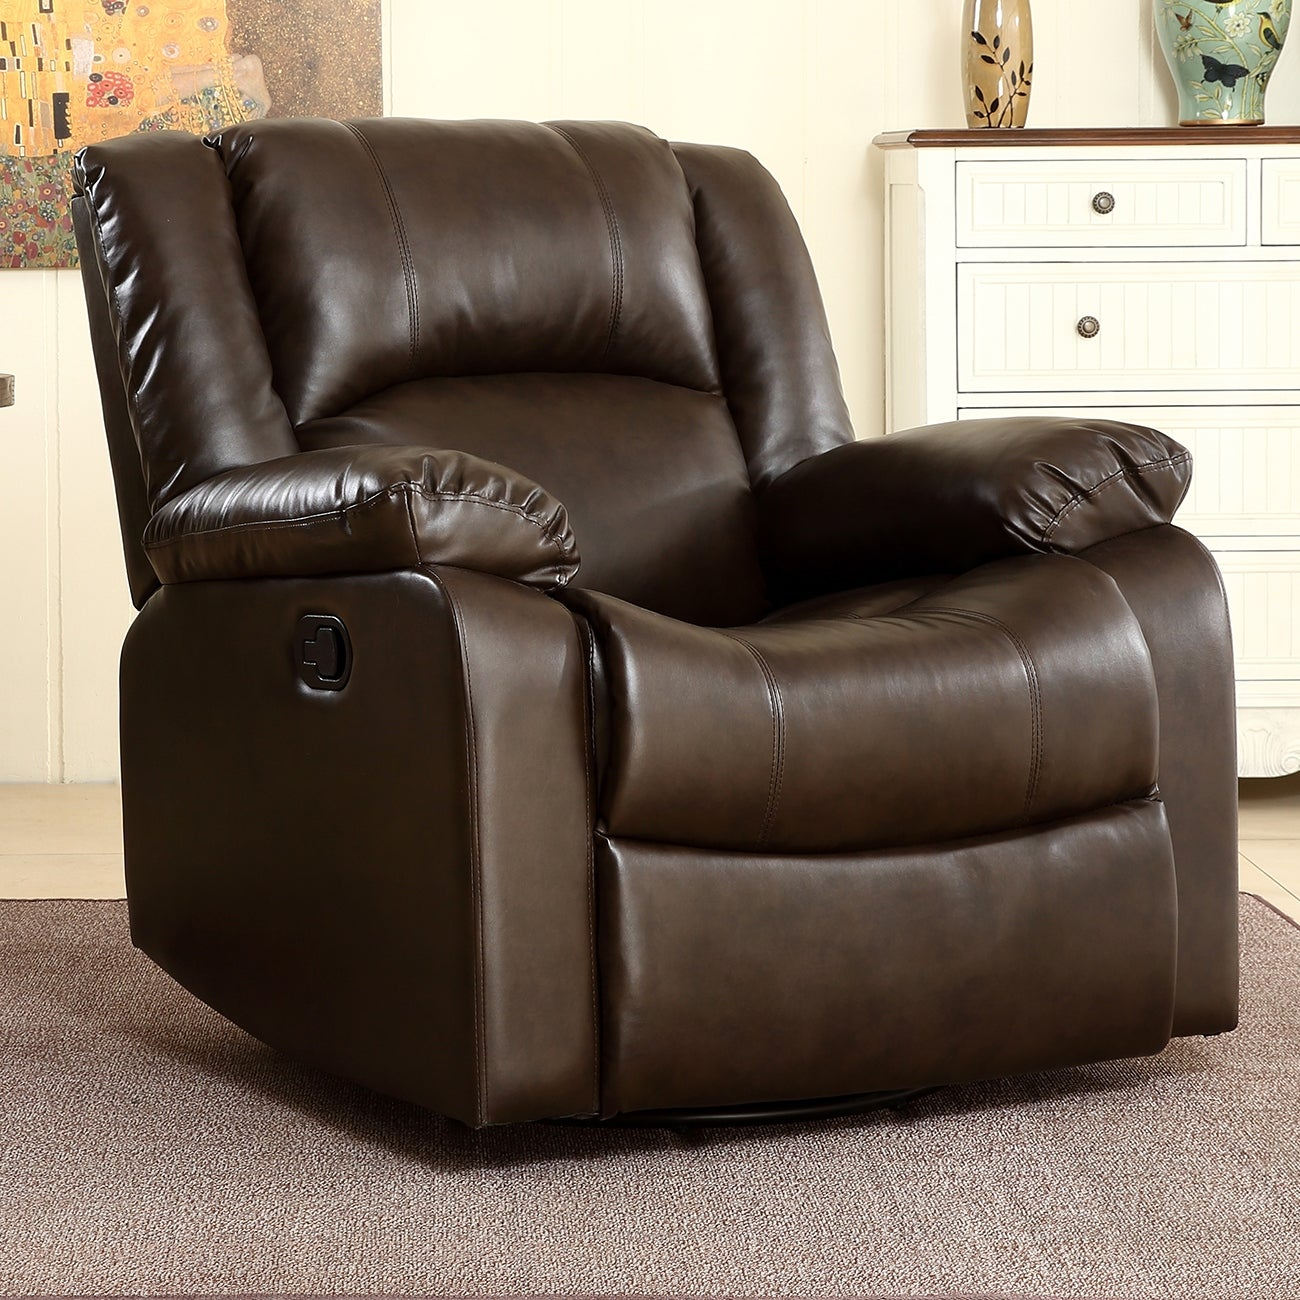 Shop belleze rocker and swivel glider recliner chair faux leather for living room free shipping today overstock com 22163190